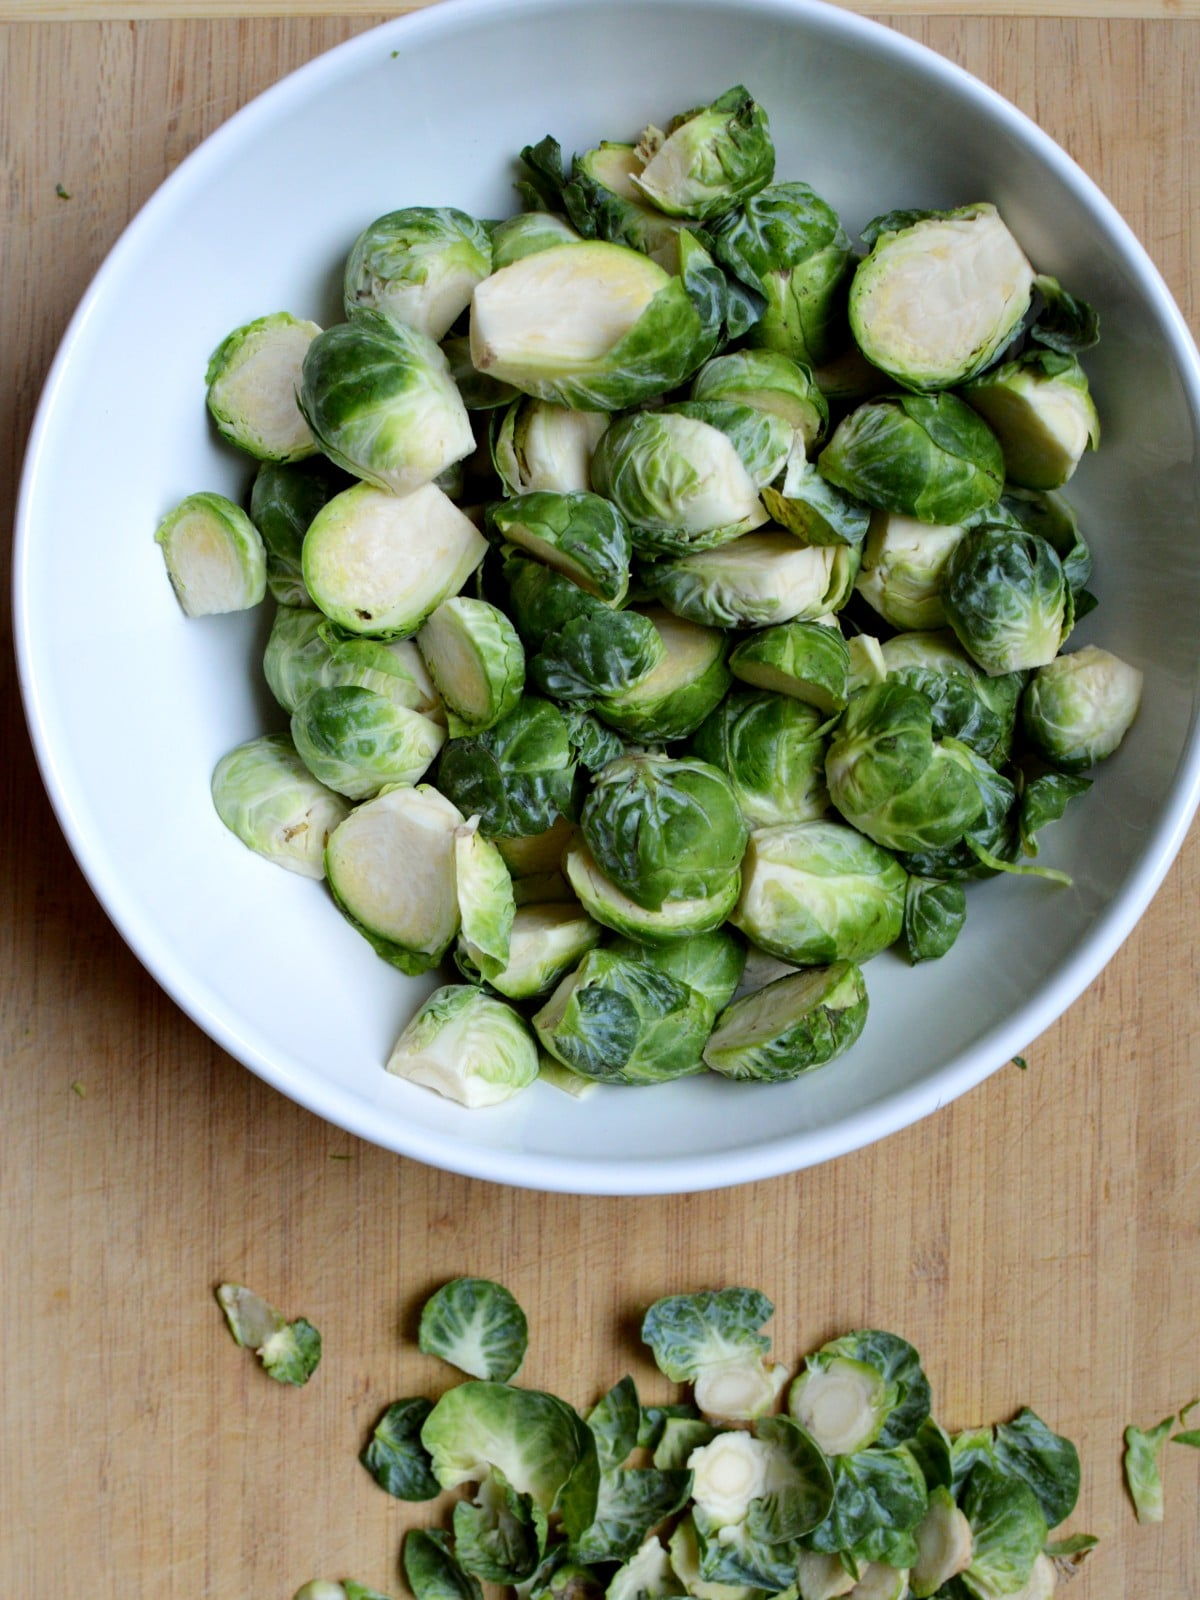 cut up brussel sprouts